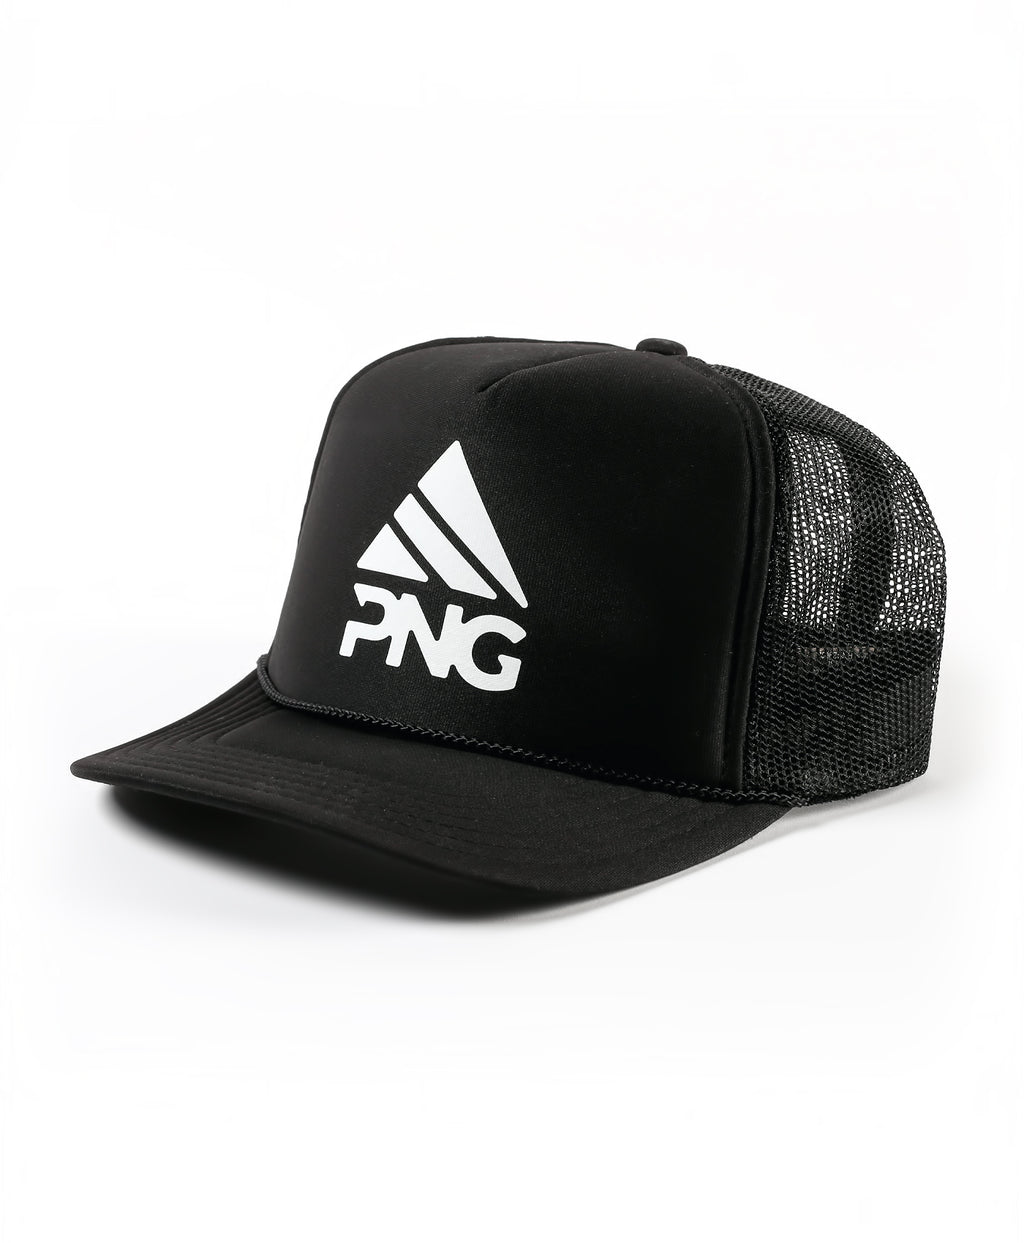 PNG Trucker Hat - Pinnacle Nutrition Group